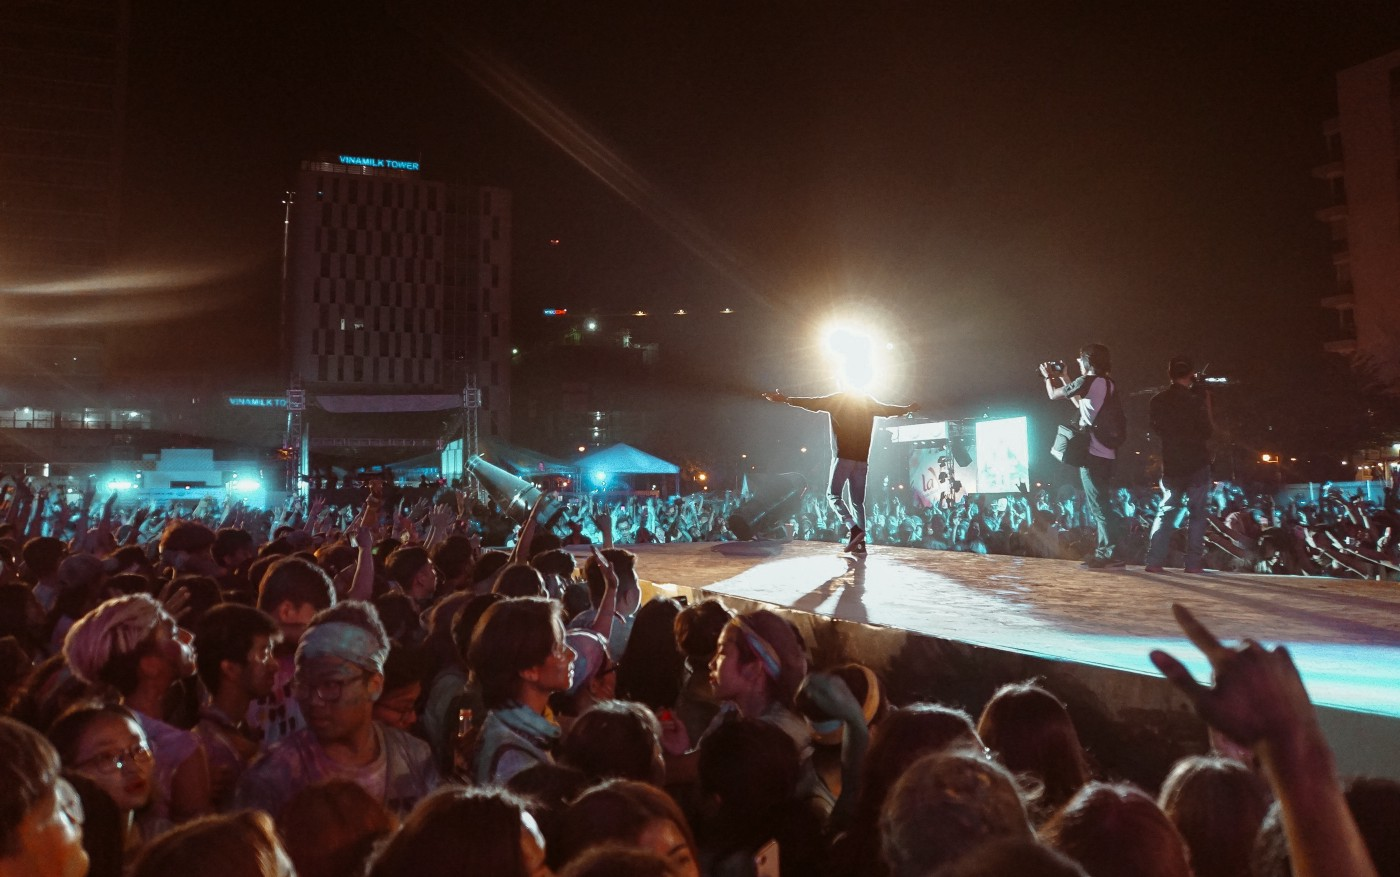 There is a spherical halo obliterating the head of a rock star on a cat walk. A crowd surrounds the protruding stage.